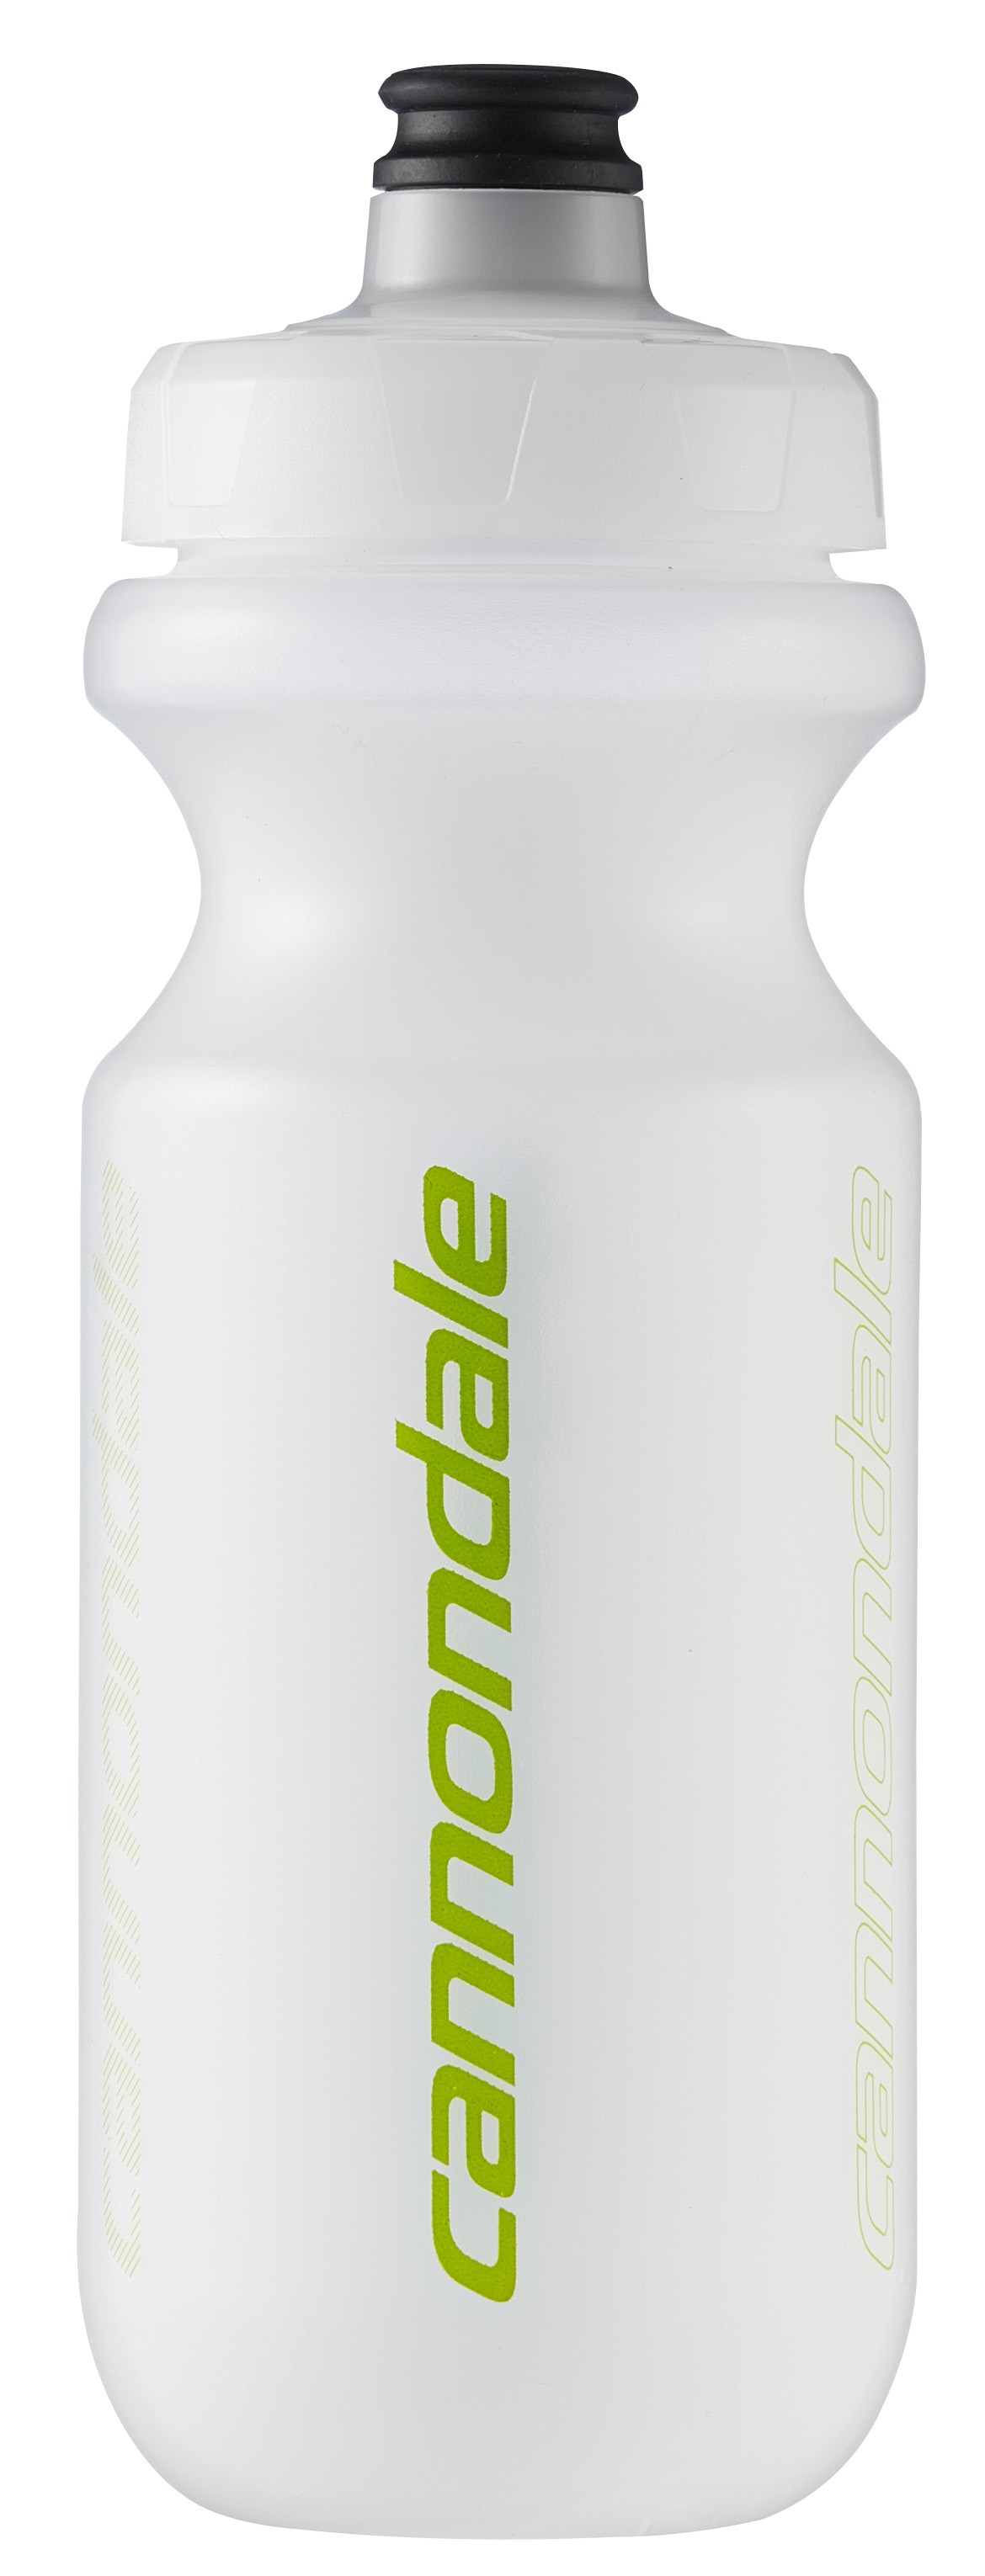 Cannondale Water Bottle Logo Fade Clear 20 oz CU41502001